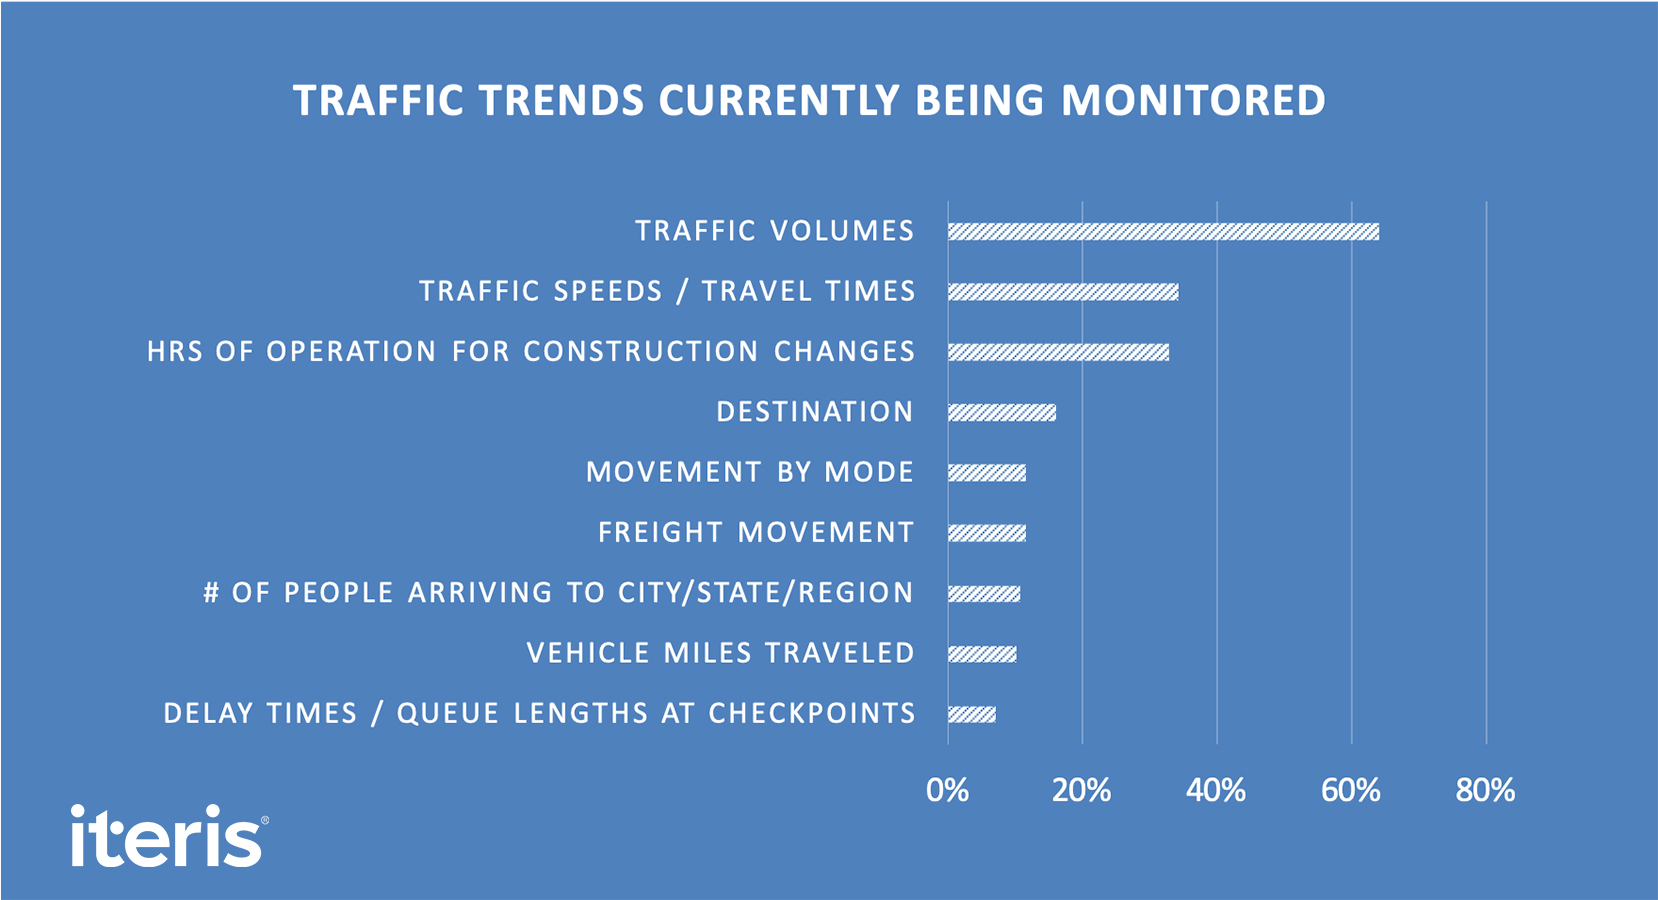 Traffic trends currently being monitored